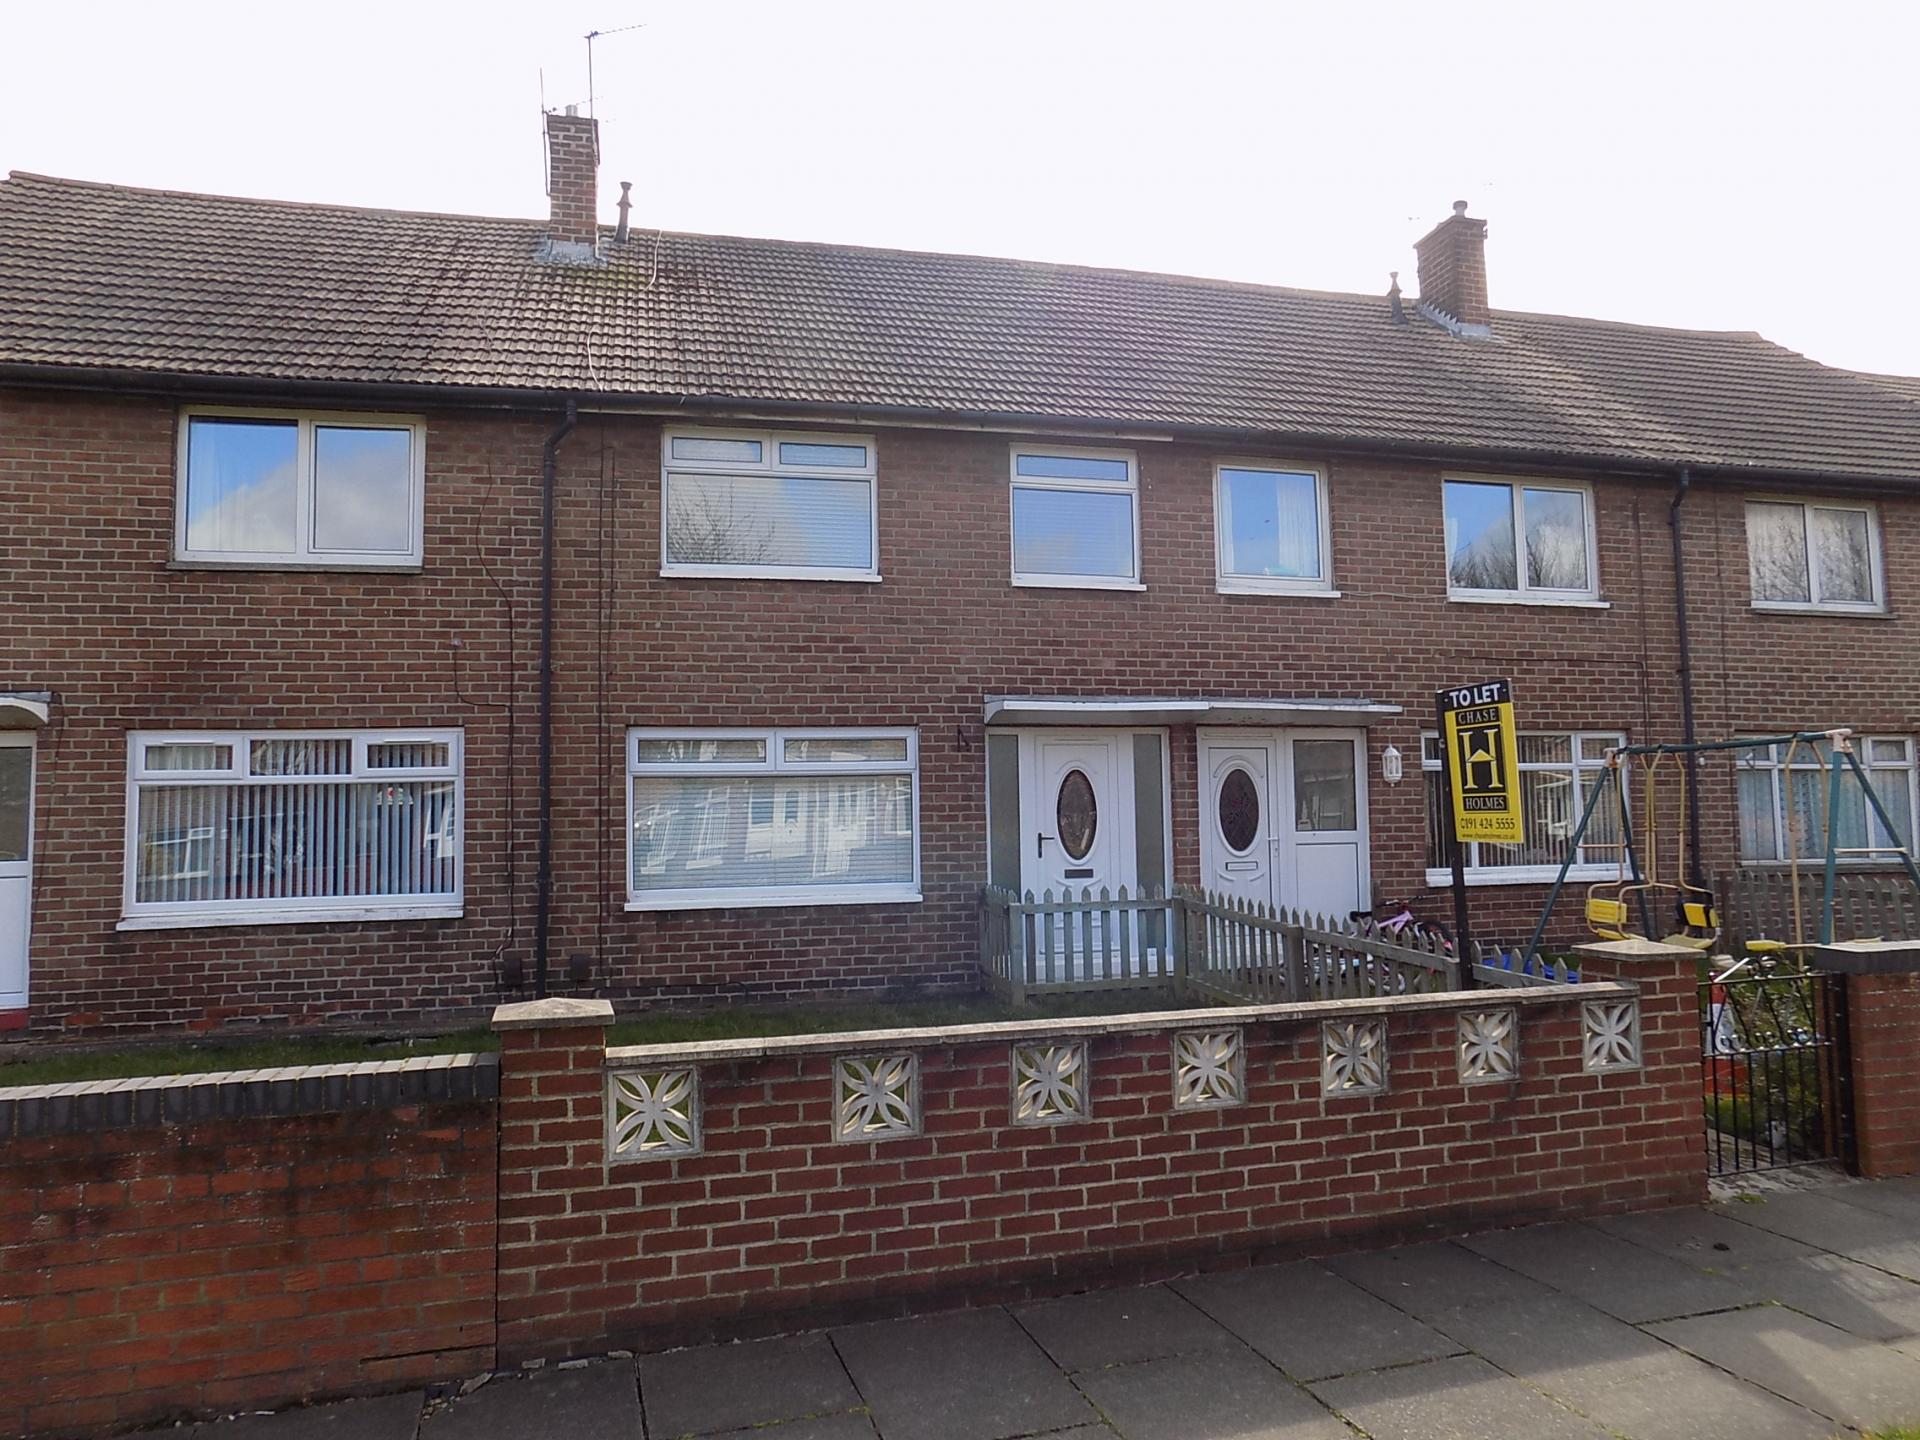 3 bedroom house for sale in jarrow for Whats a terrace house